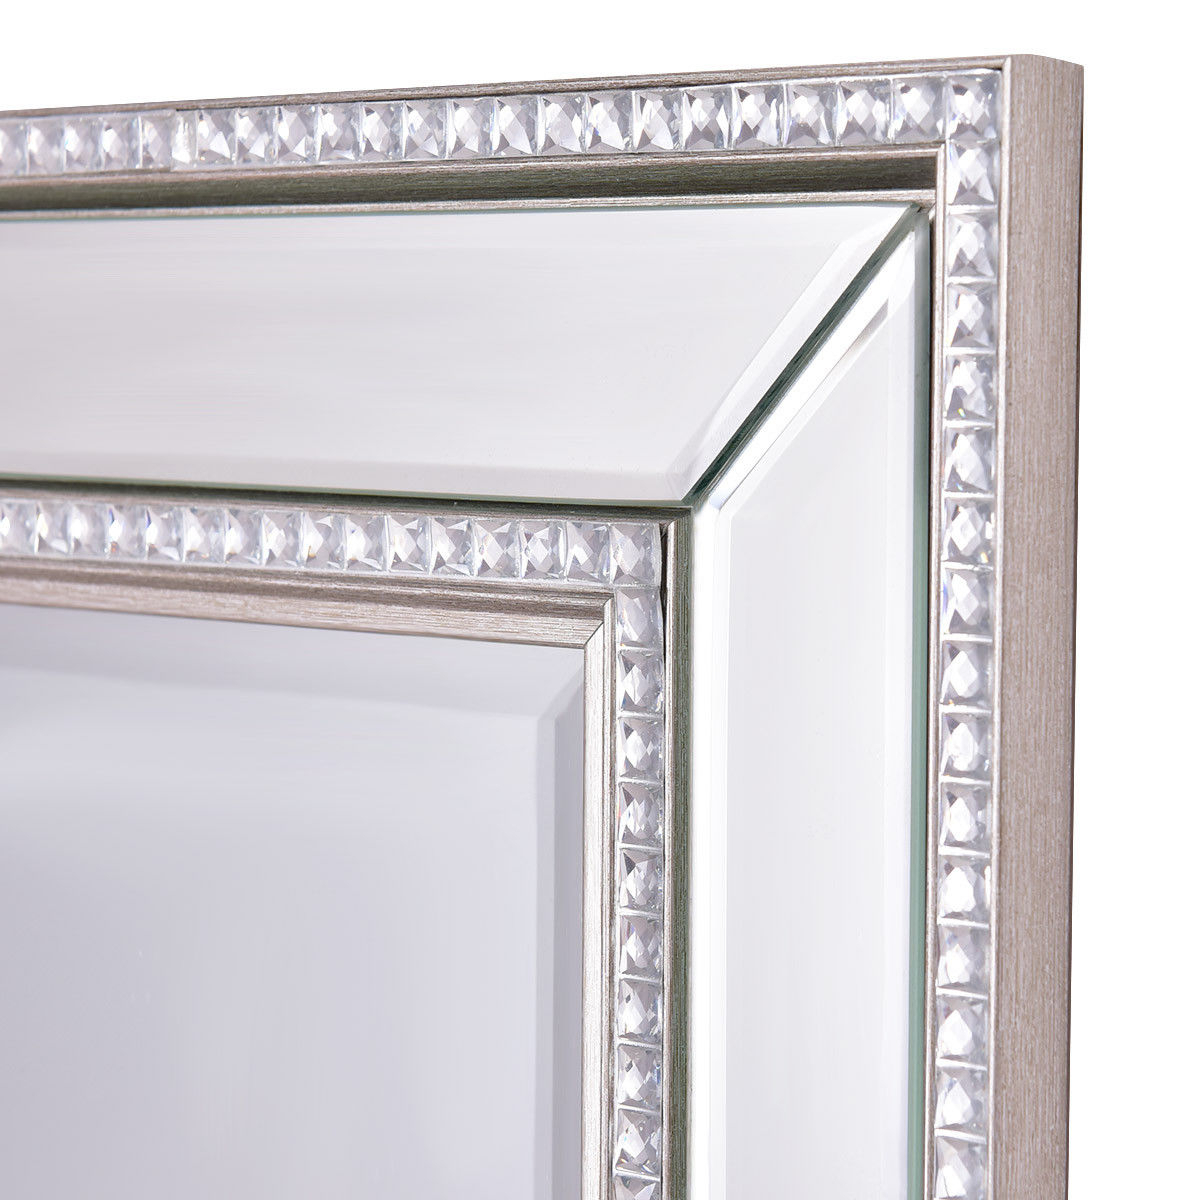 Trendy 24 X 36 Wall Mirrors With Regard To Costway 24'' X 36'' Rectangular Wall Mounted Wooden Frame Vanity Mirror Glass Bathroom (View 10 of 20)